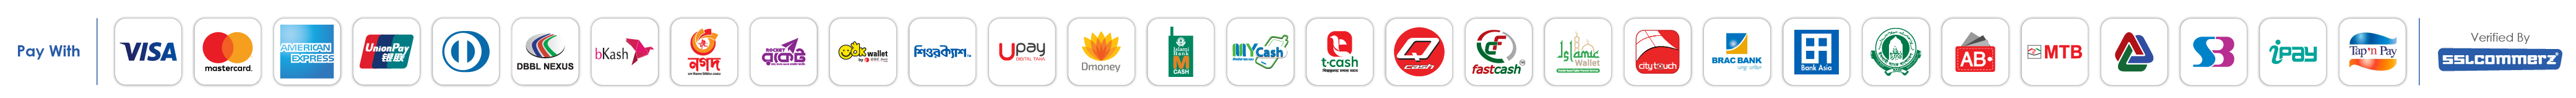 Most Popular & Secure Payment Options